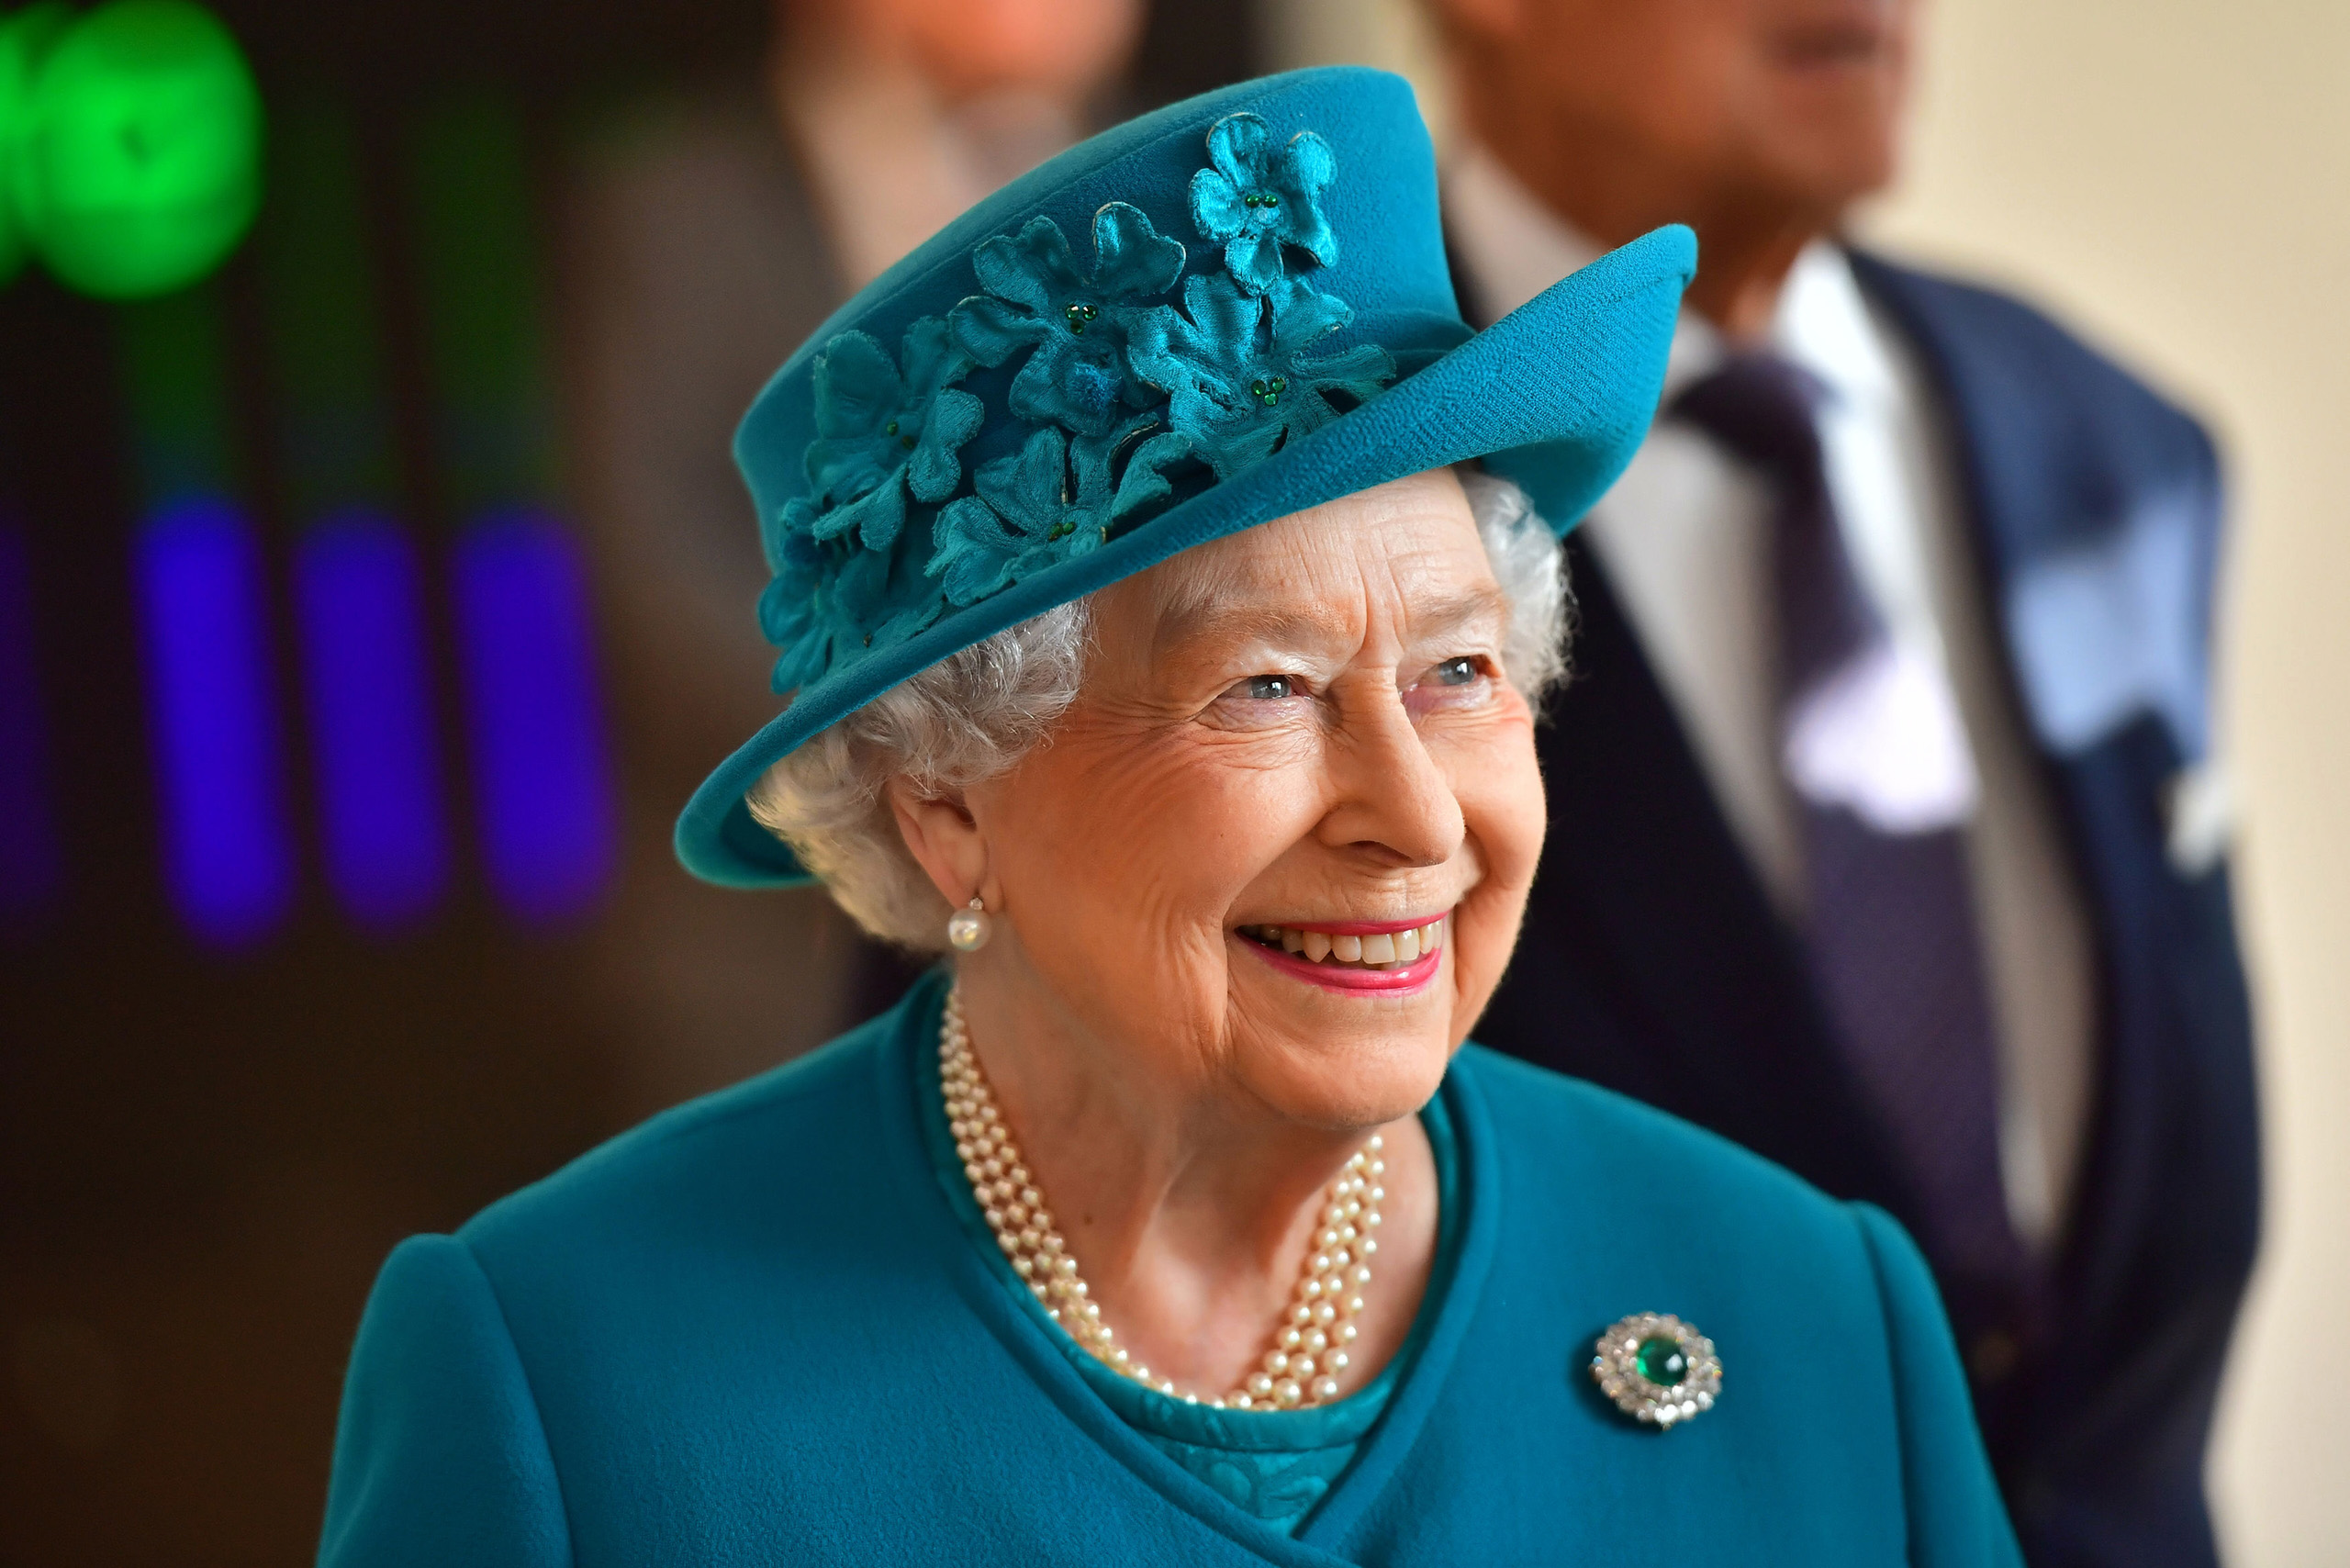 Britain's Queen Elizabeth II arrives to attend the opening of the National Cyber Security Centre in London on February 14, 2017. Queen Elizabeth II inaugurated Britain's National Cyber Security Centre on Tuesday, spearheading the country's efforts to combat a growing wave of cyber attacks notably from Russia. / AFP / POOL / Dominic Lipinski (Photo credit should read DOMINIC LIPINSKI/AFP/Getty Images)